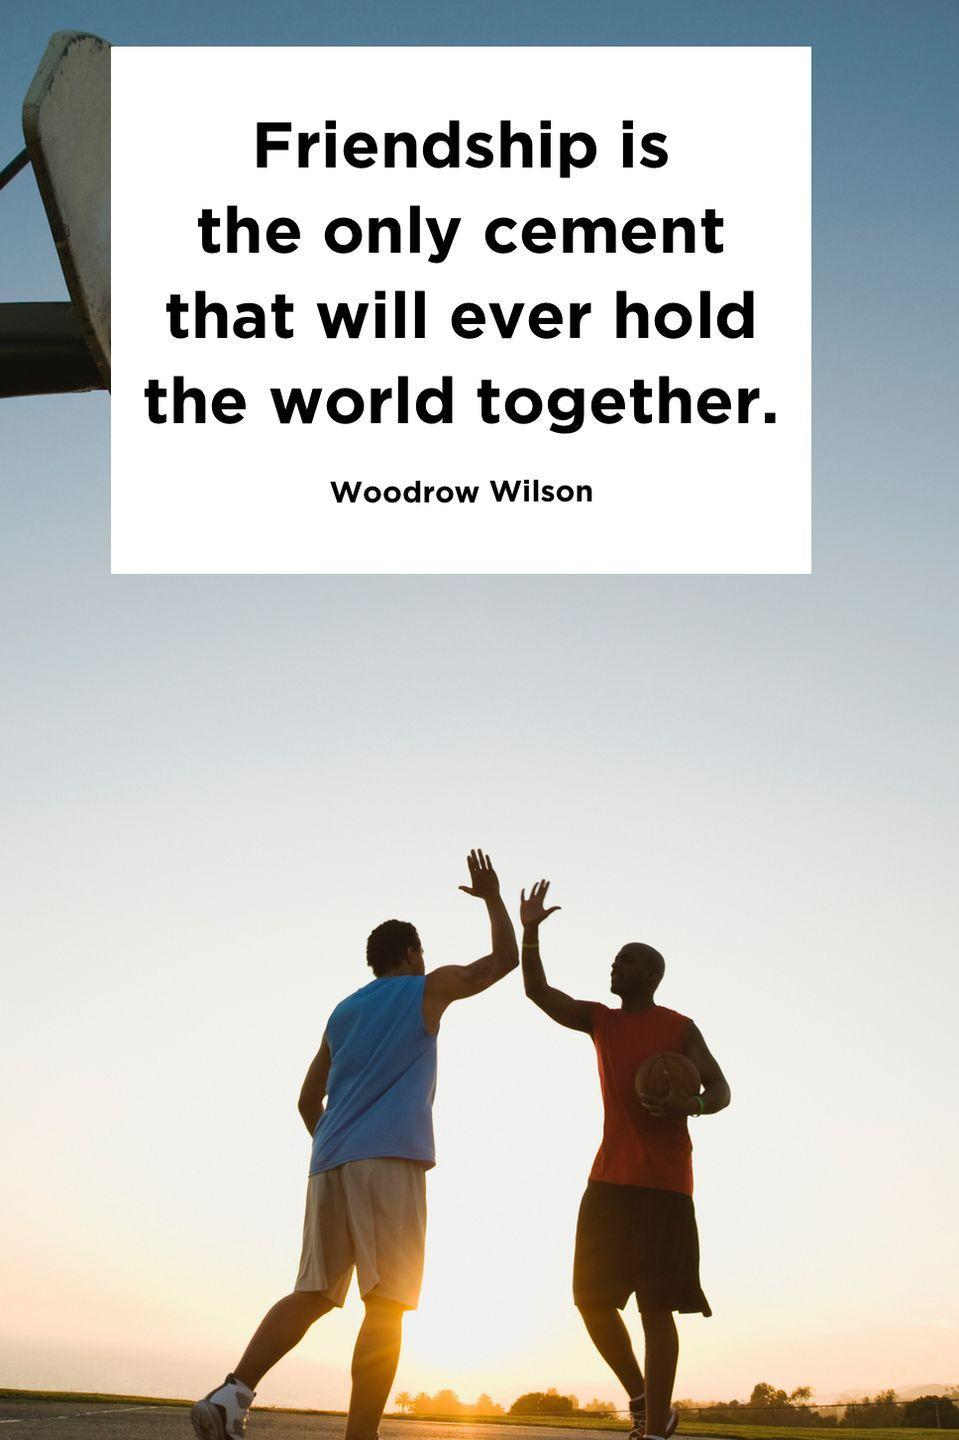 "<p>""Friendship is the only cement that will ever hold the world together.""</p>"